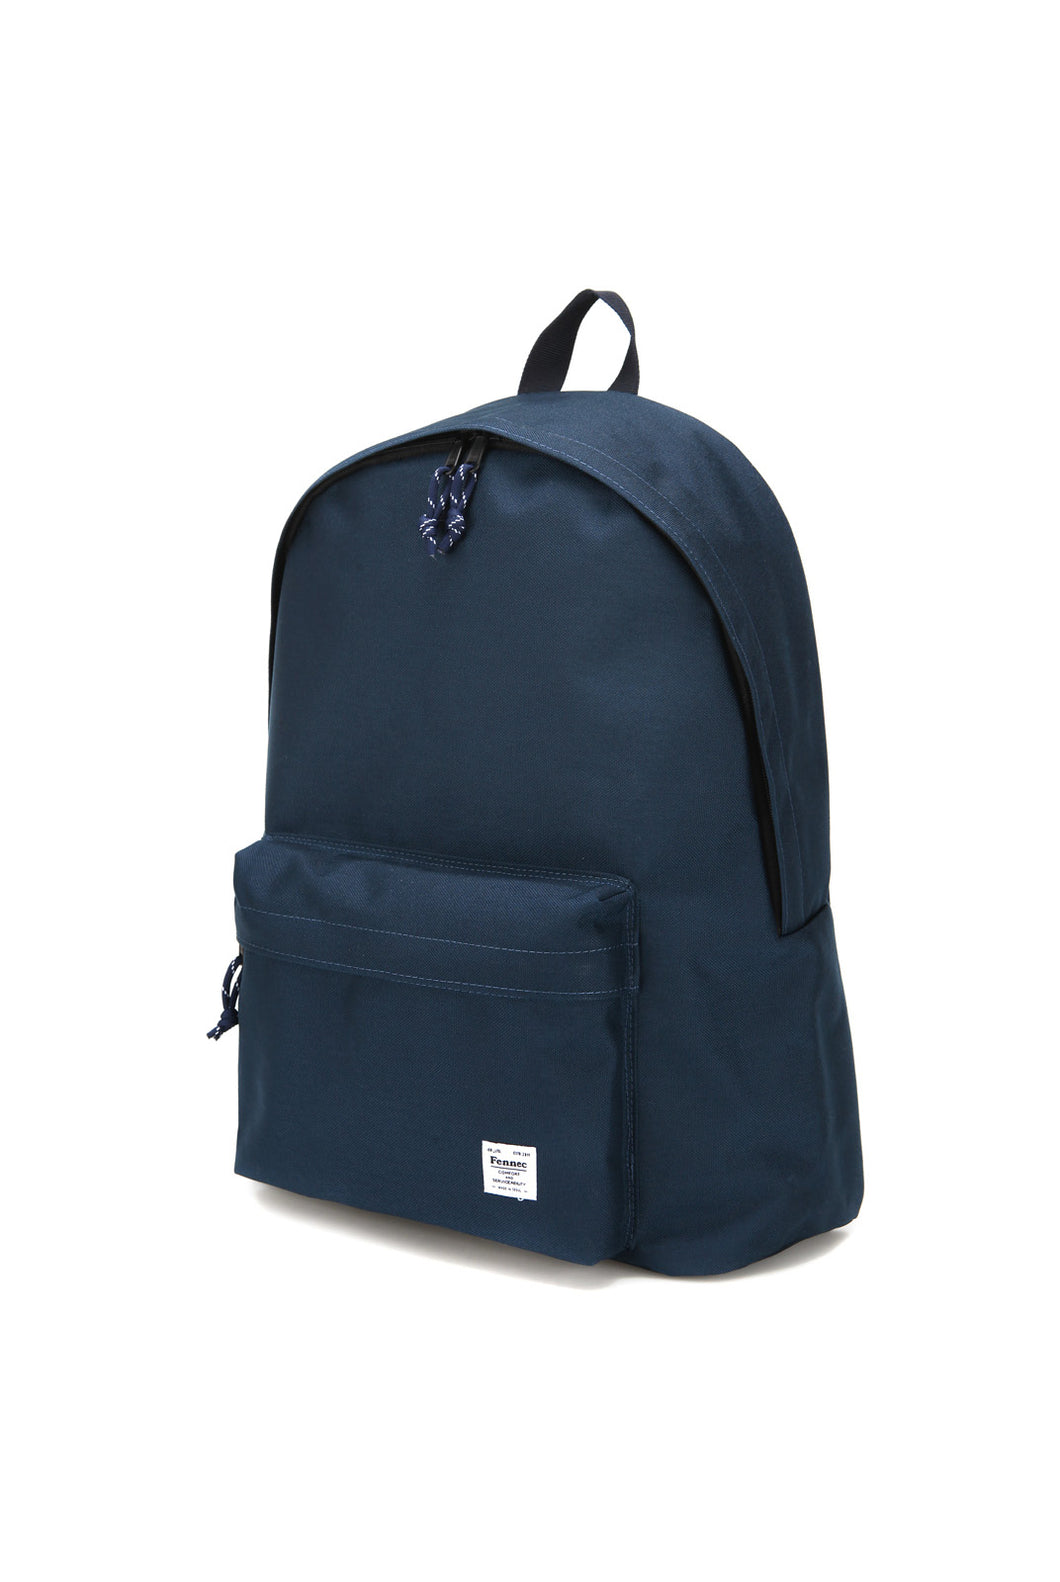 Fennec - C & S - Backpack - Navy